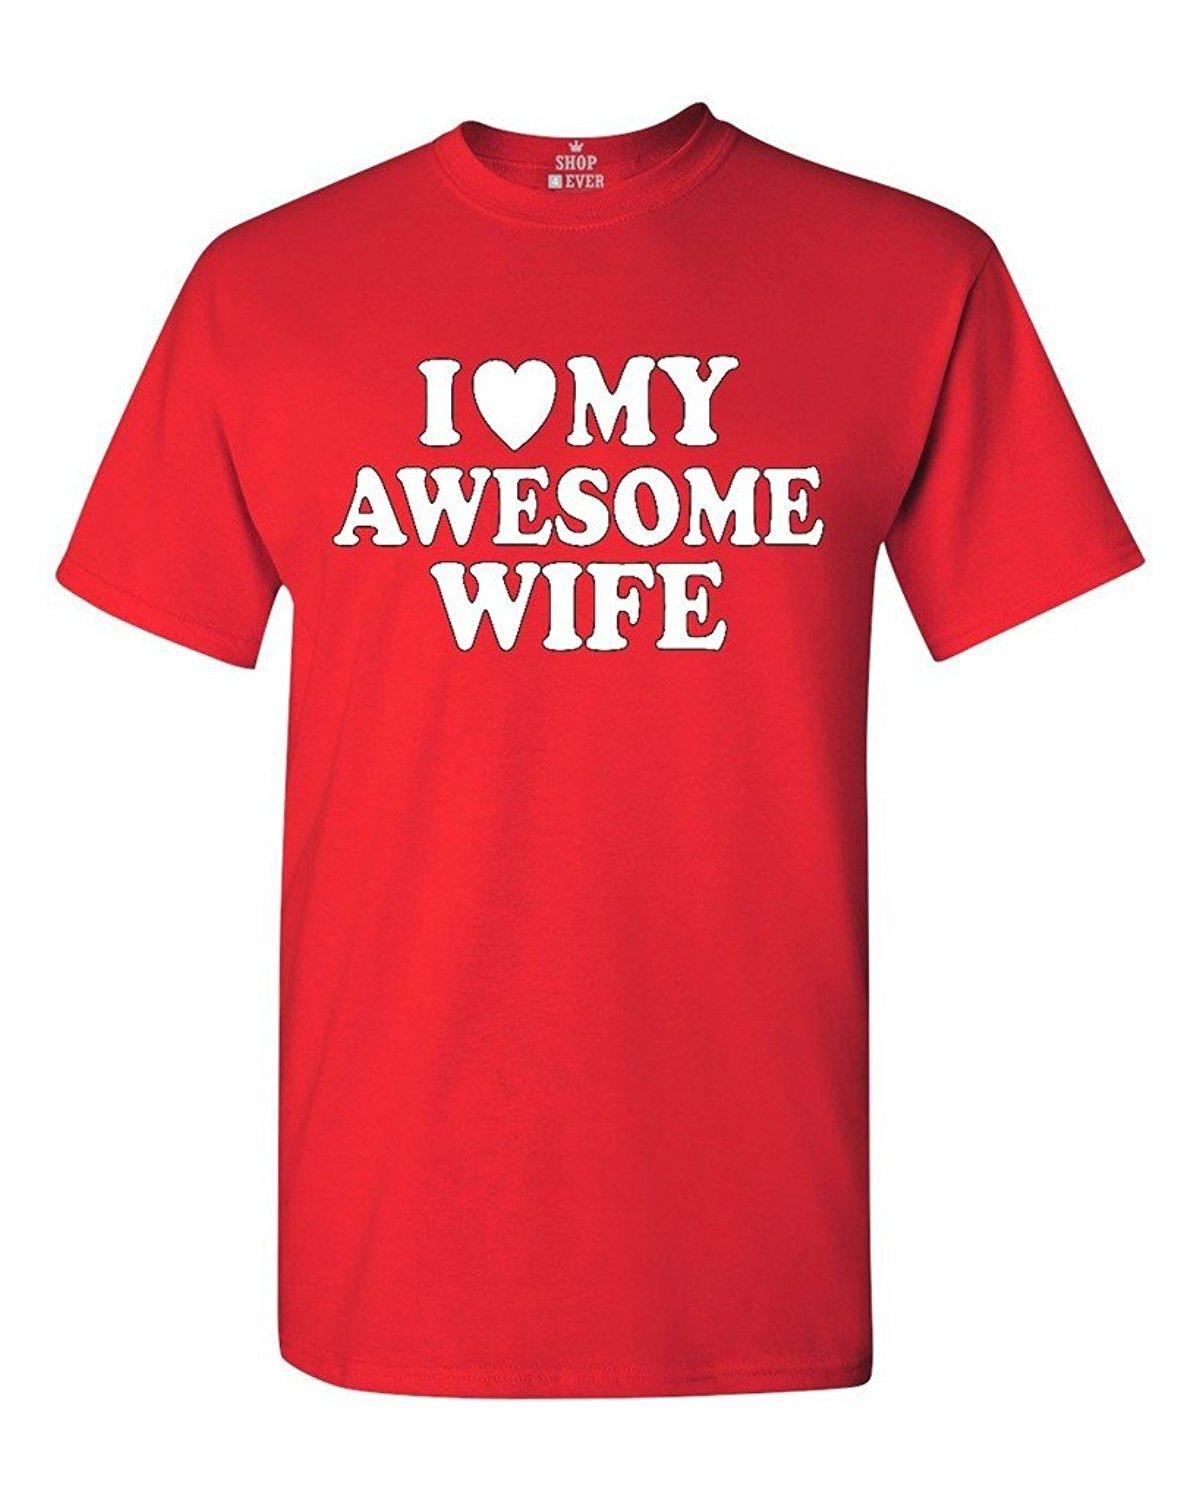 Shop customer account create/admin/Cms_Wysiwyg/directive - No Matter What Kinds Of Clever Tee Shirts You Are Finding Now We Can Provide You That For Boys Girls Men Women We Have Them All